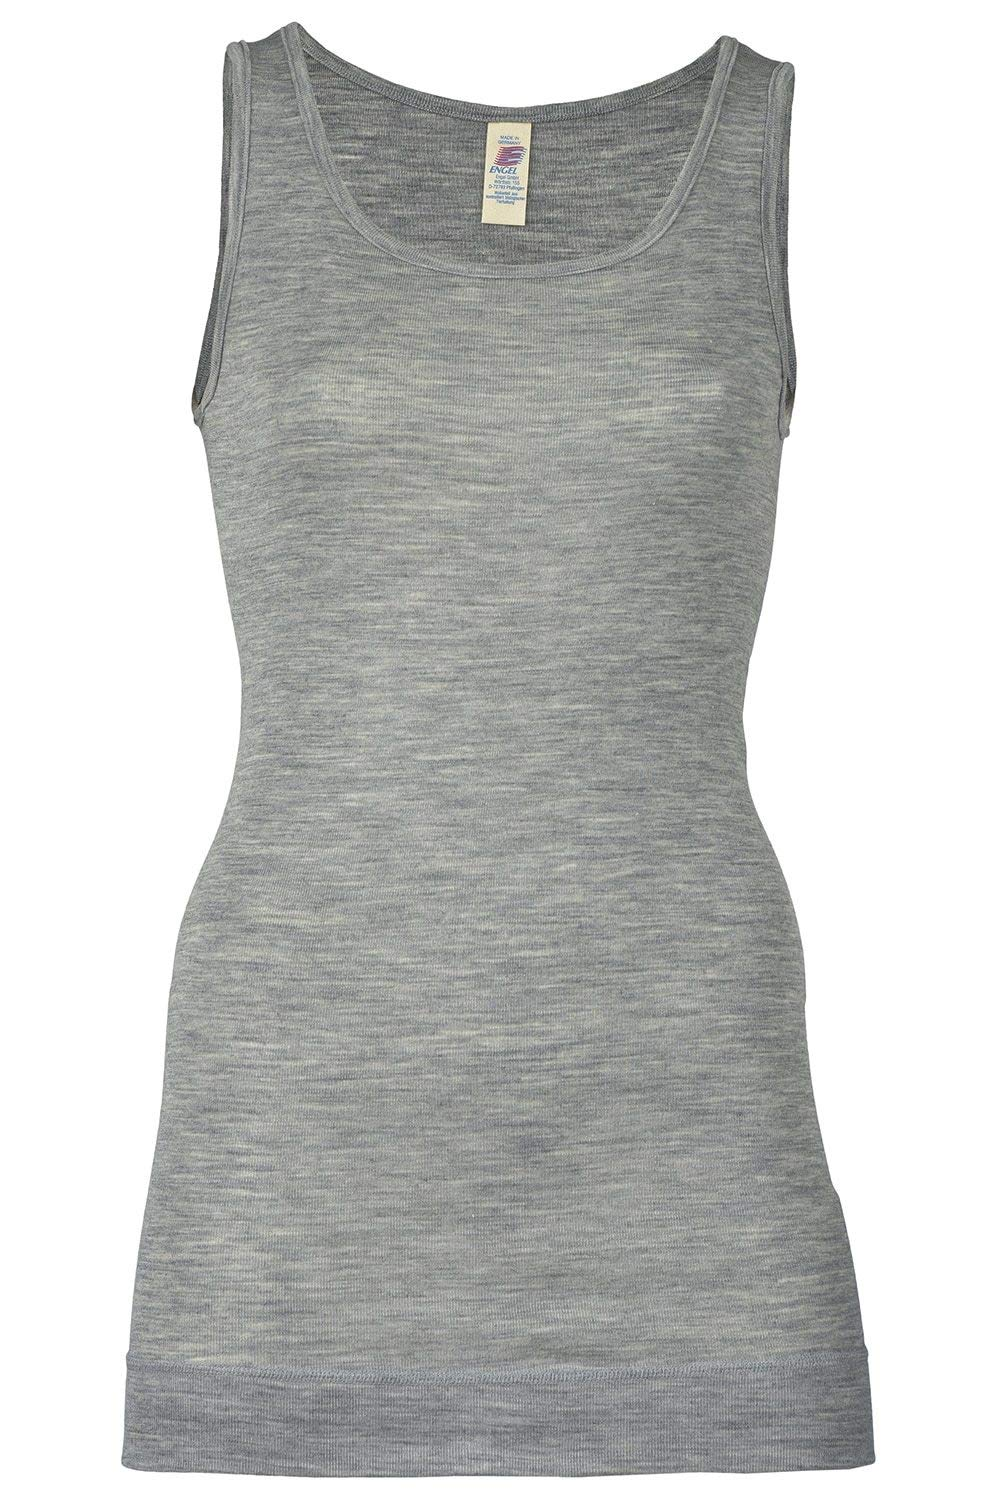 Women's Thermal Base Layer Top - Lightweight Moisture Wicking Merino Wool Silk Sleeveless Tunic (EU 38-40 | Small, Grey) by Ecoable